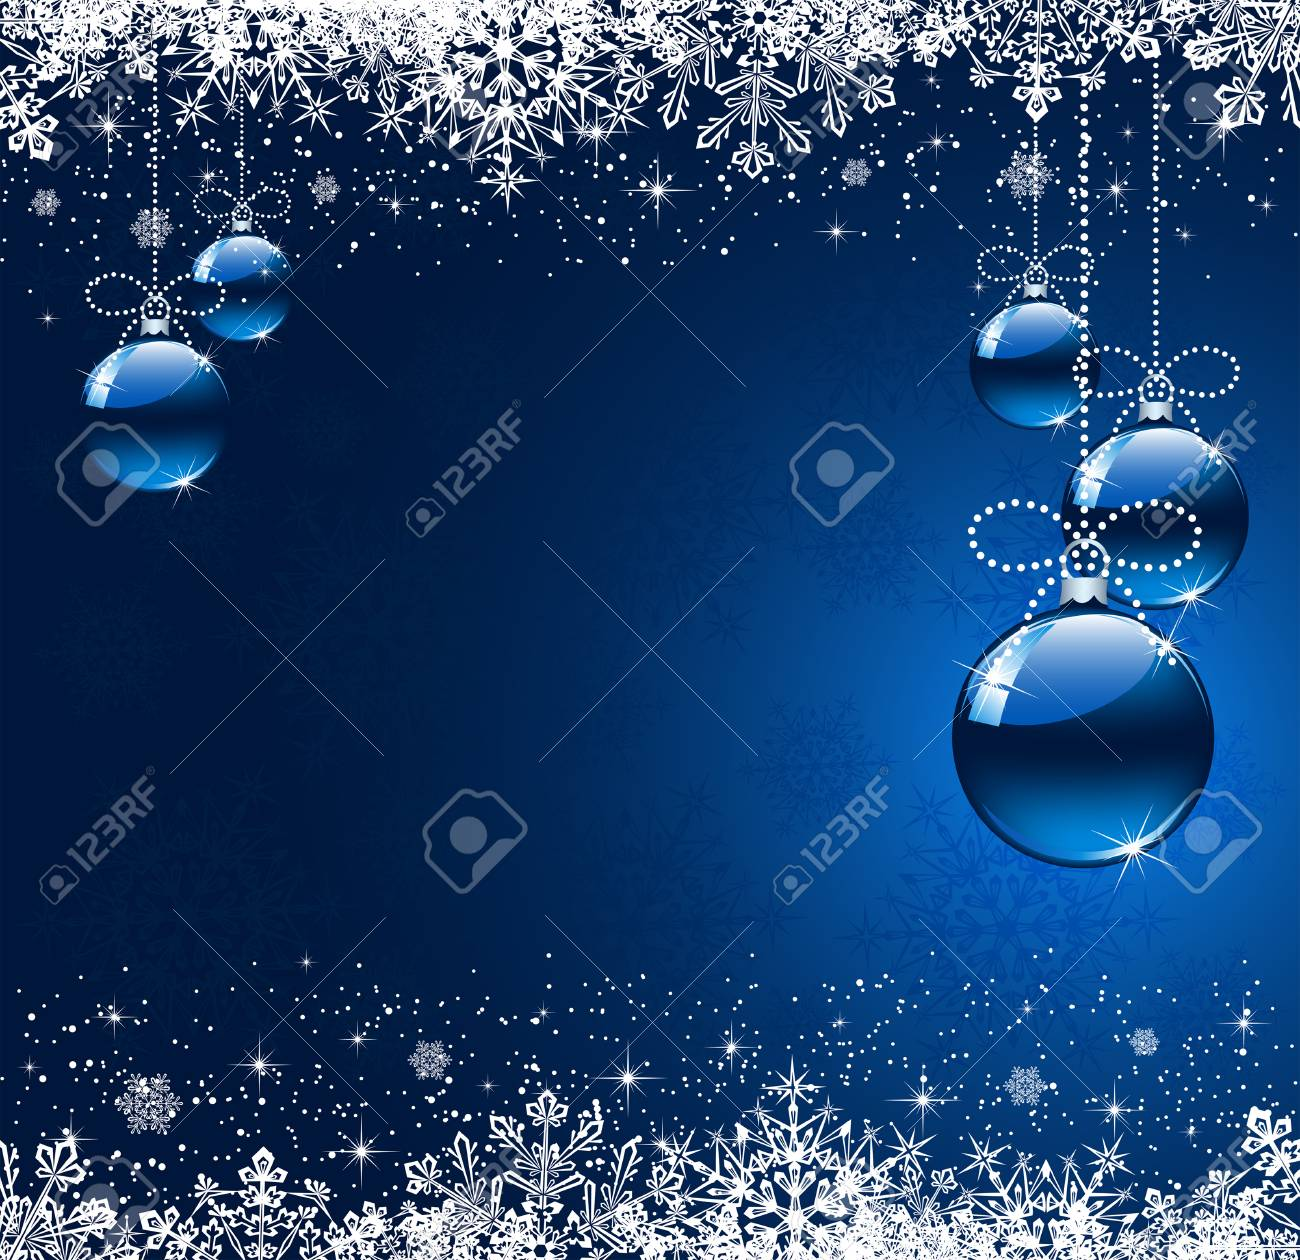 Background with snowflakes and Christmas balls, illustration Stock Vector - 8282648